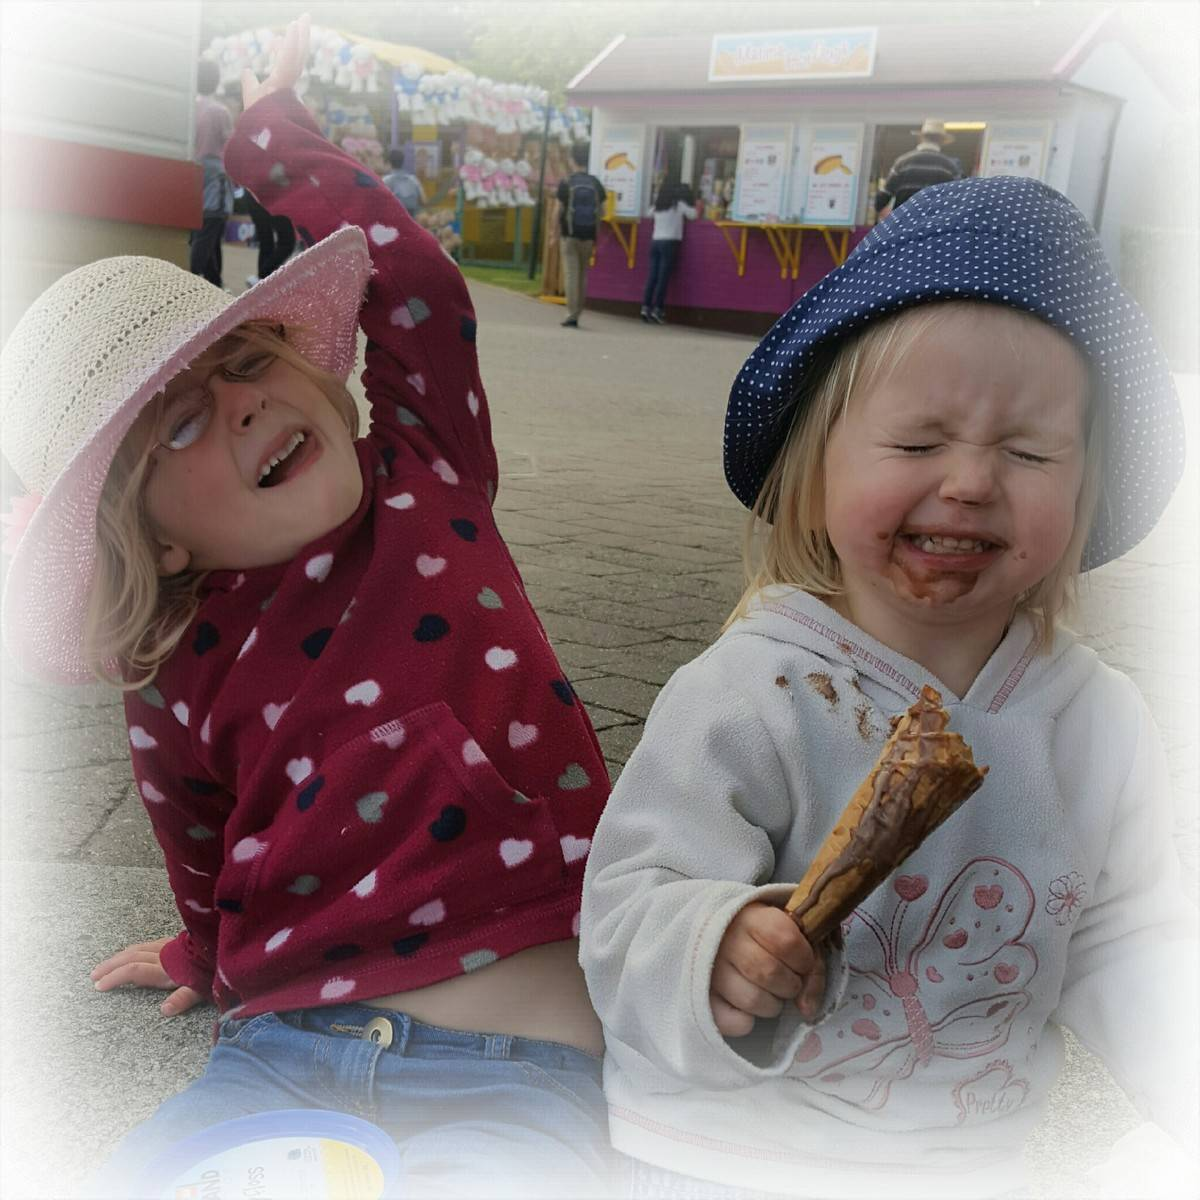 two little girls in sun hats and jumpers, one with her arm in the air smiling, the other holding an ice cream with chocolate ice cream all round her face.